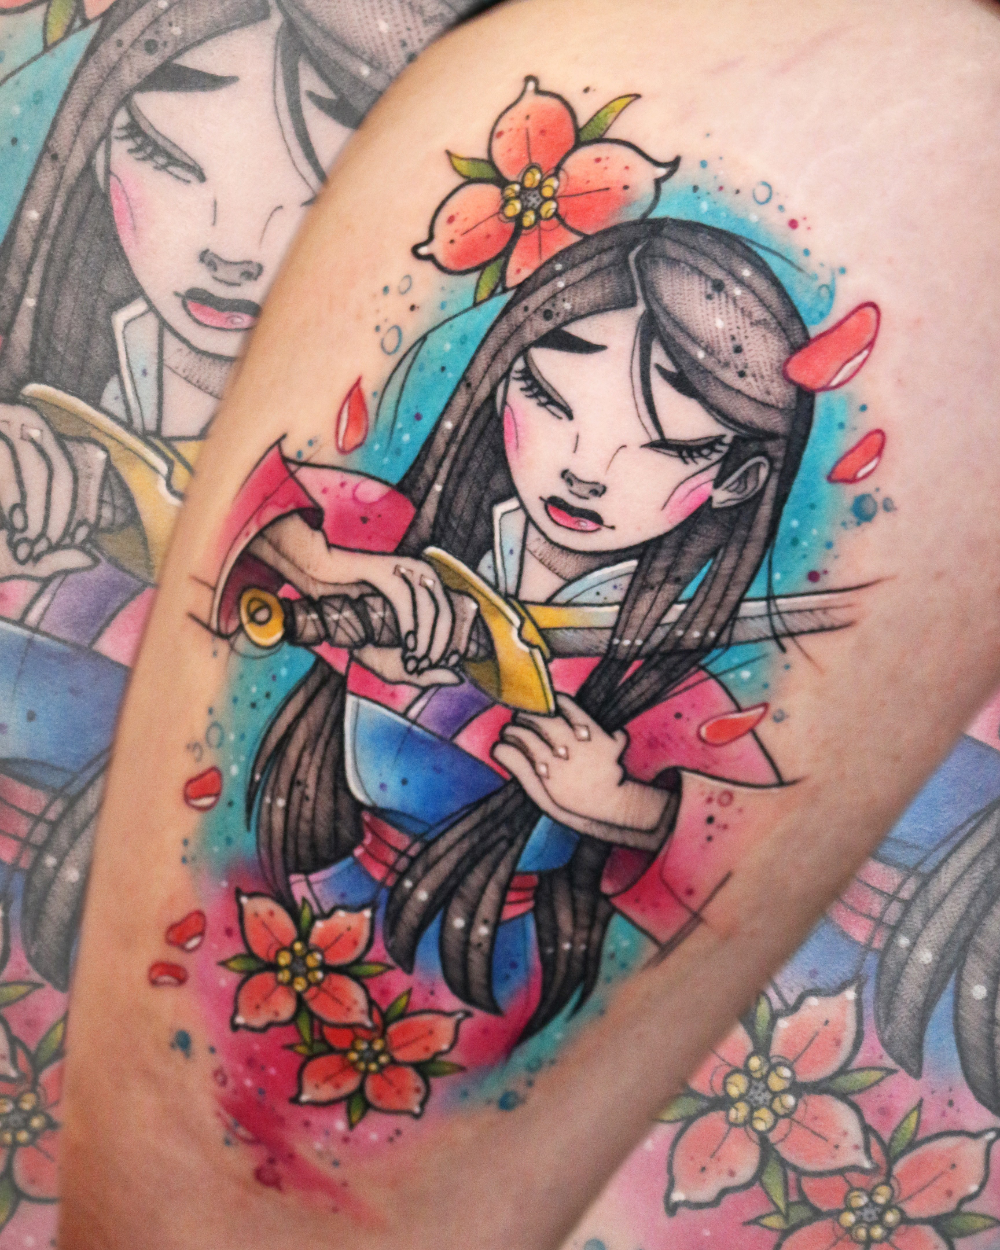 Comics, Geek, Nerd e Otaku: As tatuagens inspiradas nos personagens de quadrinhos, mangás e animes! - Blog Tattoo2me